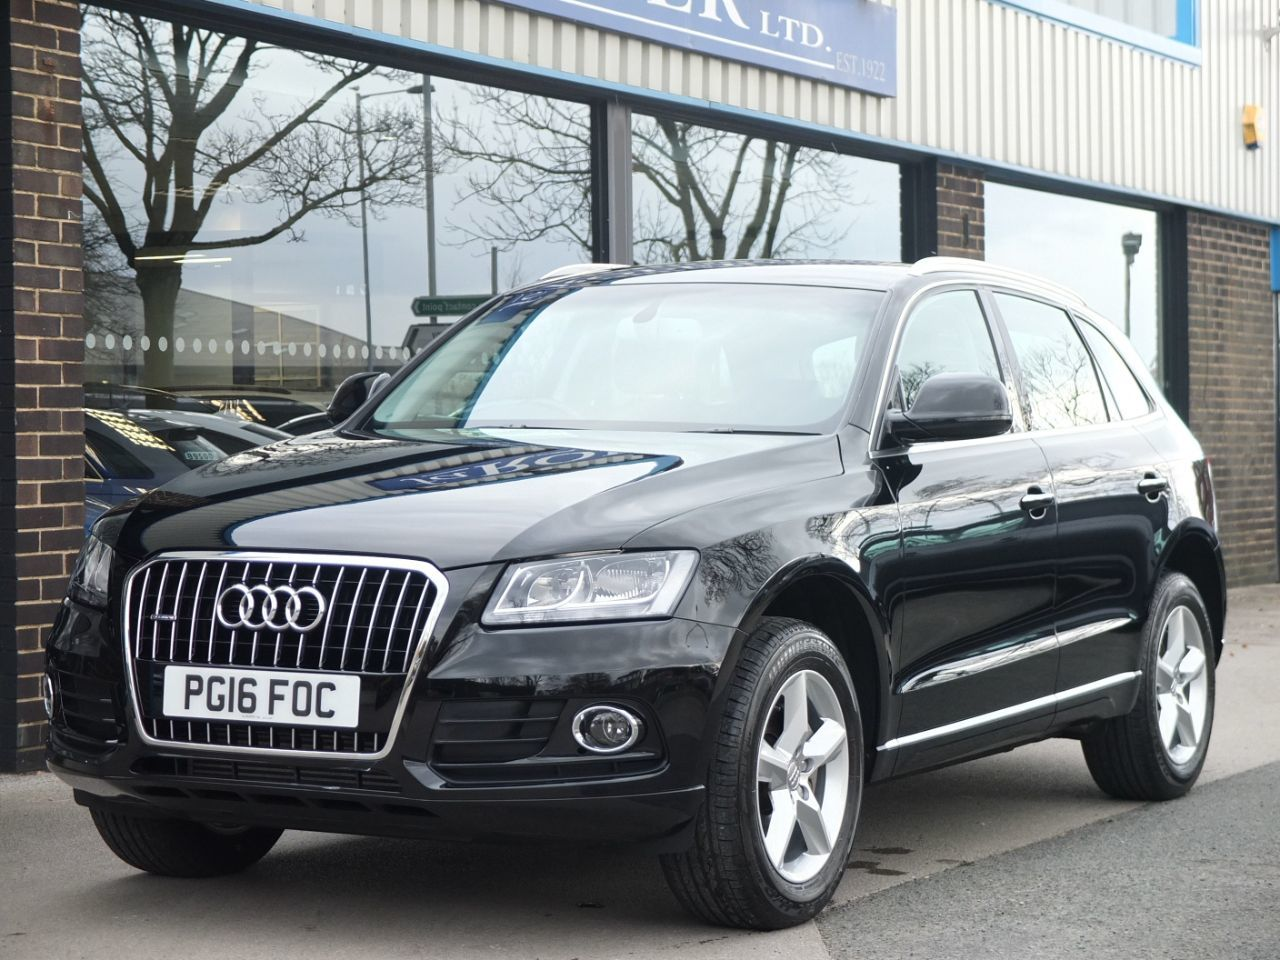 Audi Q5 2.0T FSI quattro SE 230ps Estate Petrol Brilliant BlackAudi Q5 2.0T FSI quattro SE 230ps Estate Petrol Brilliant Black at fa Roper Ltd Bradford